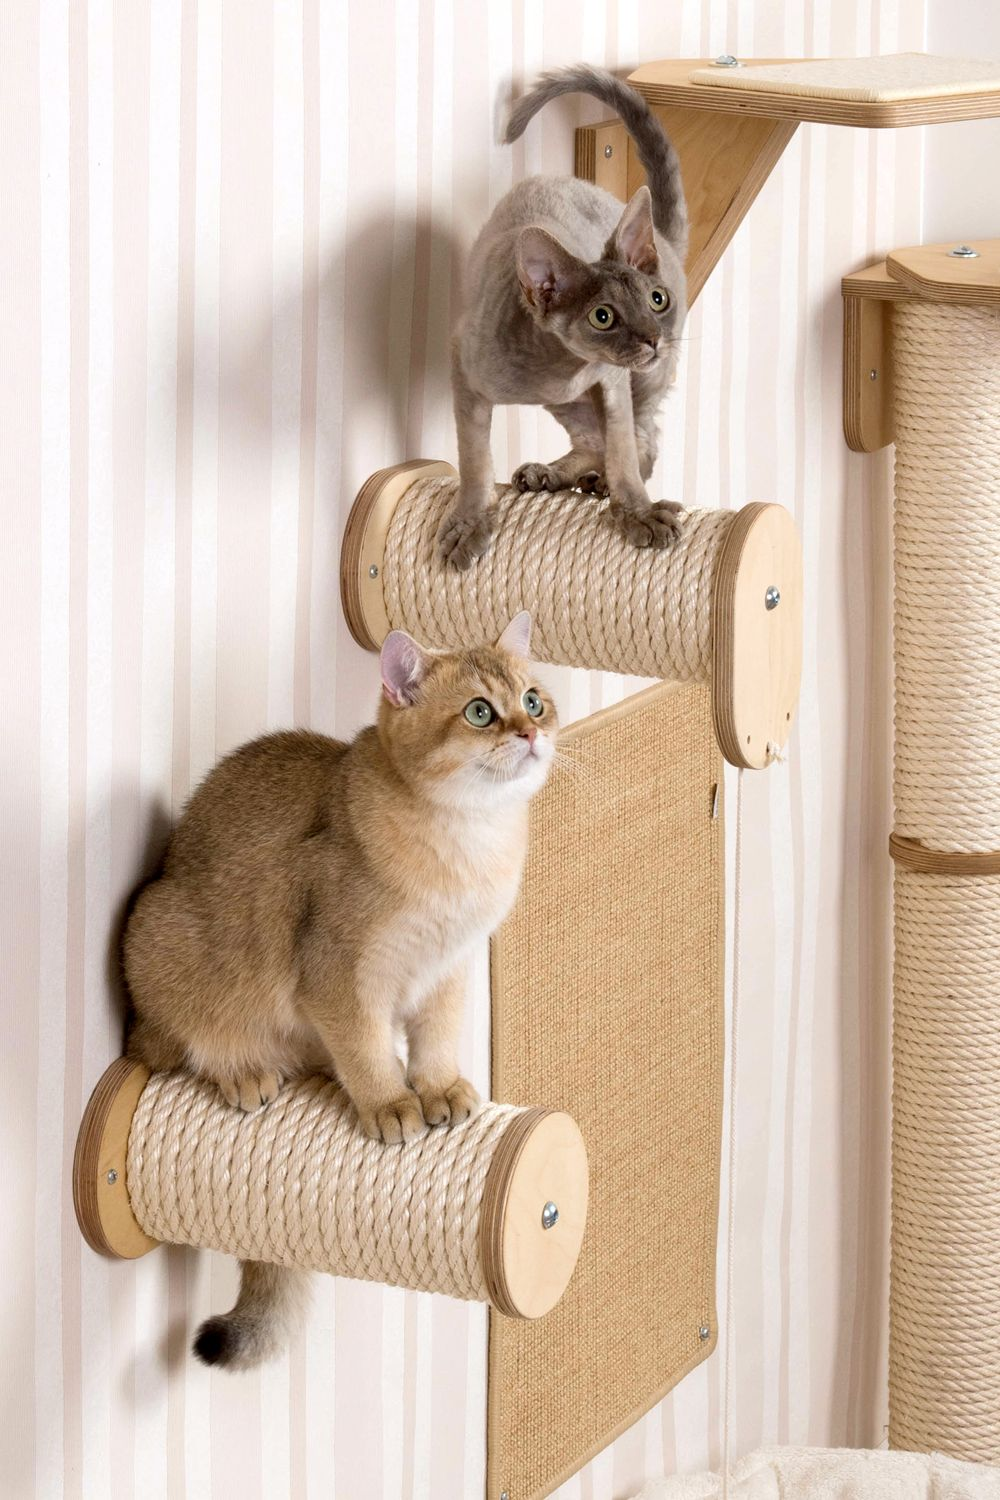 Profeline climbing wall for cats cat decor pinterest cat profeline climbing wall for cats amipublicfo Image collections